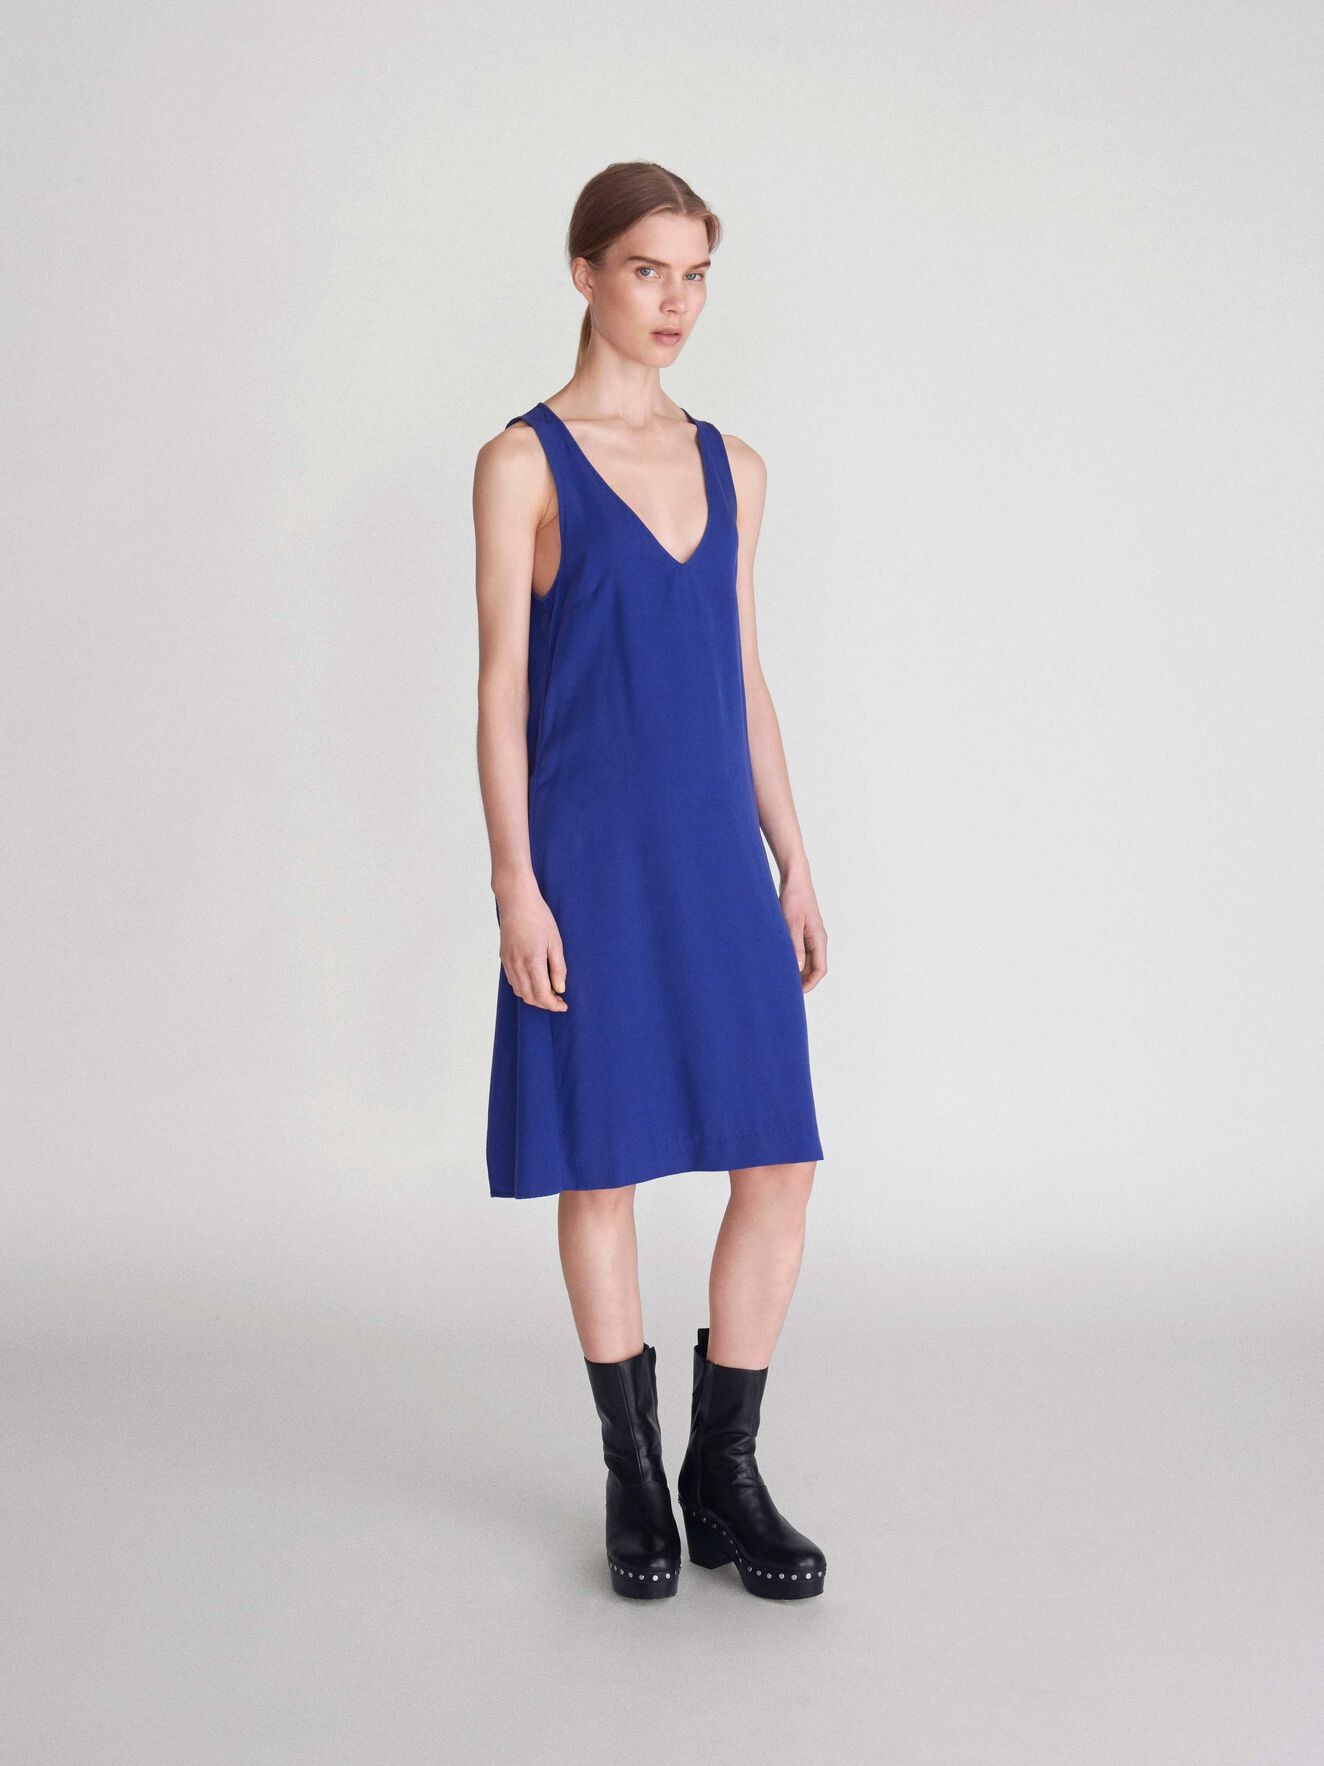 Royal Dress in Deep Ocean Blue from Tiger of Sweden